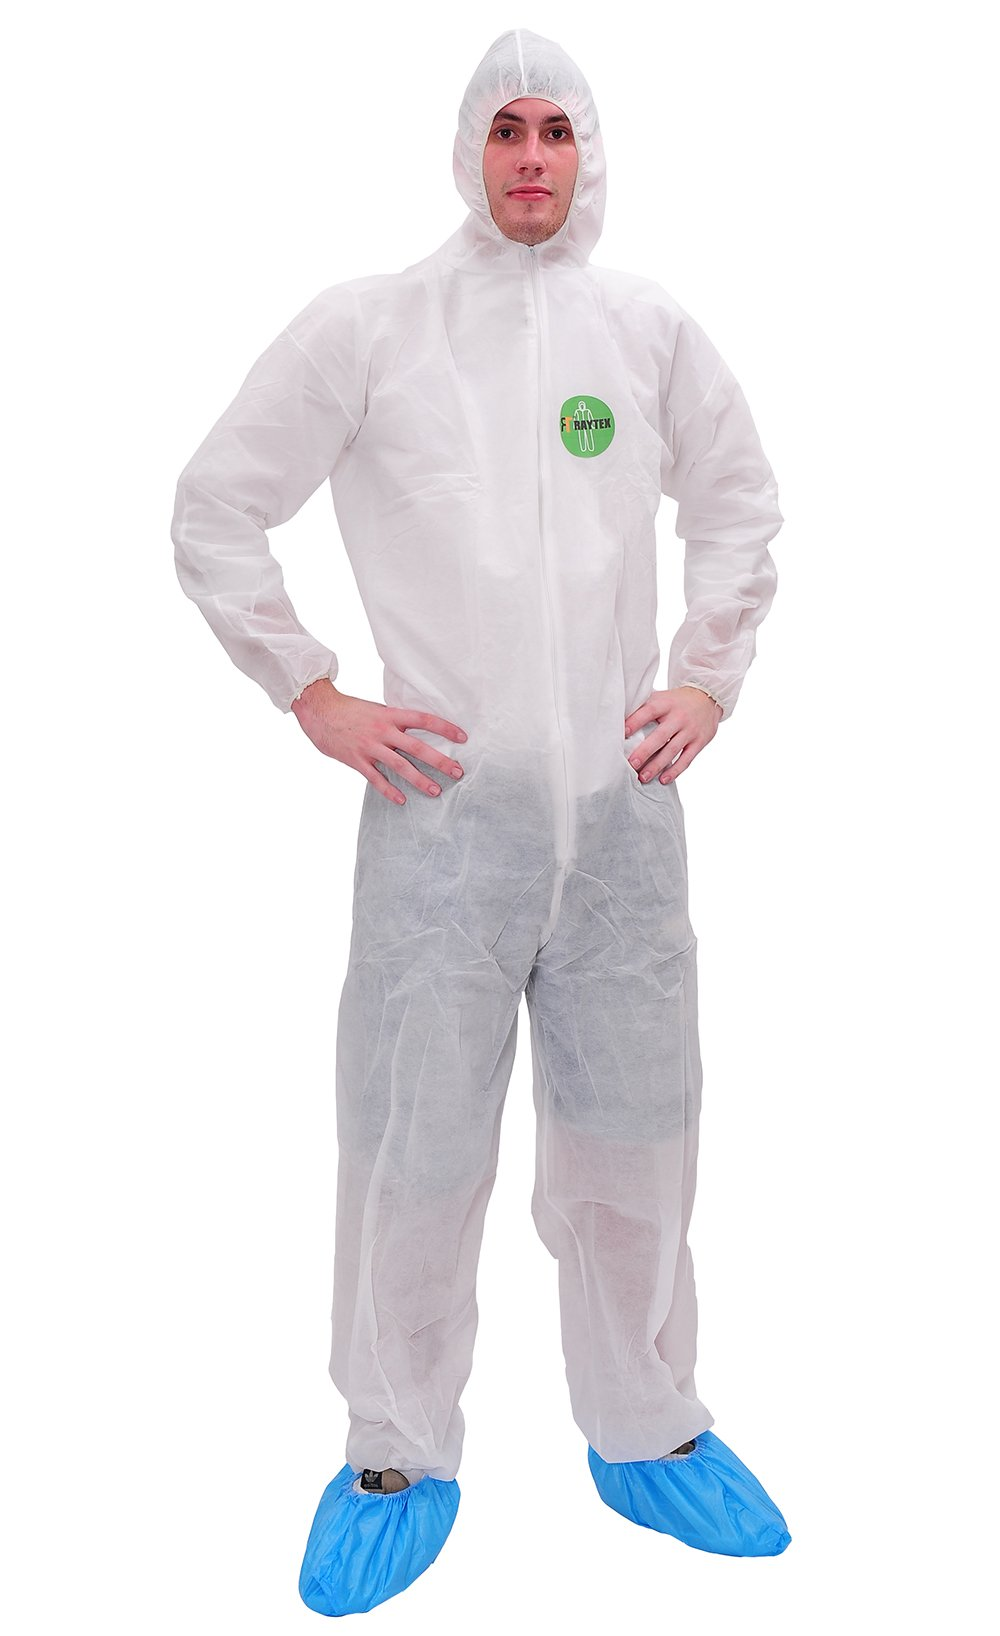 Raygard Light Duty White Disposable Coveralls with Hood Polypropylene PP Suit Elastic Cuffs Front Zipper Closure for Spray Painting Surgical Cleaning Work(X-Large)